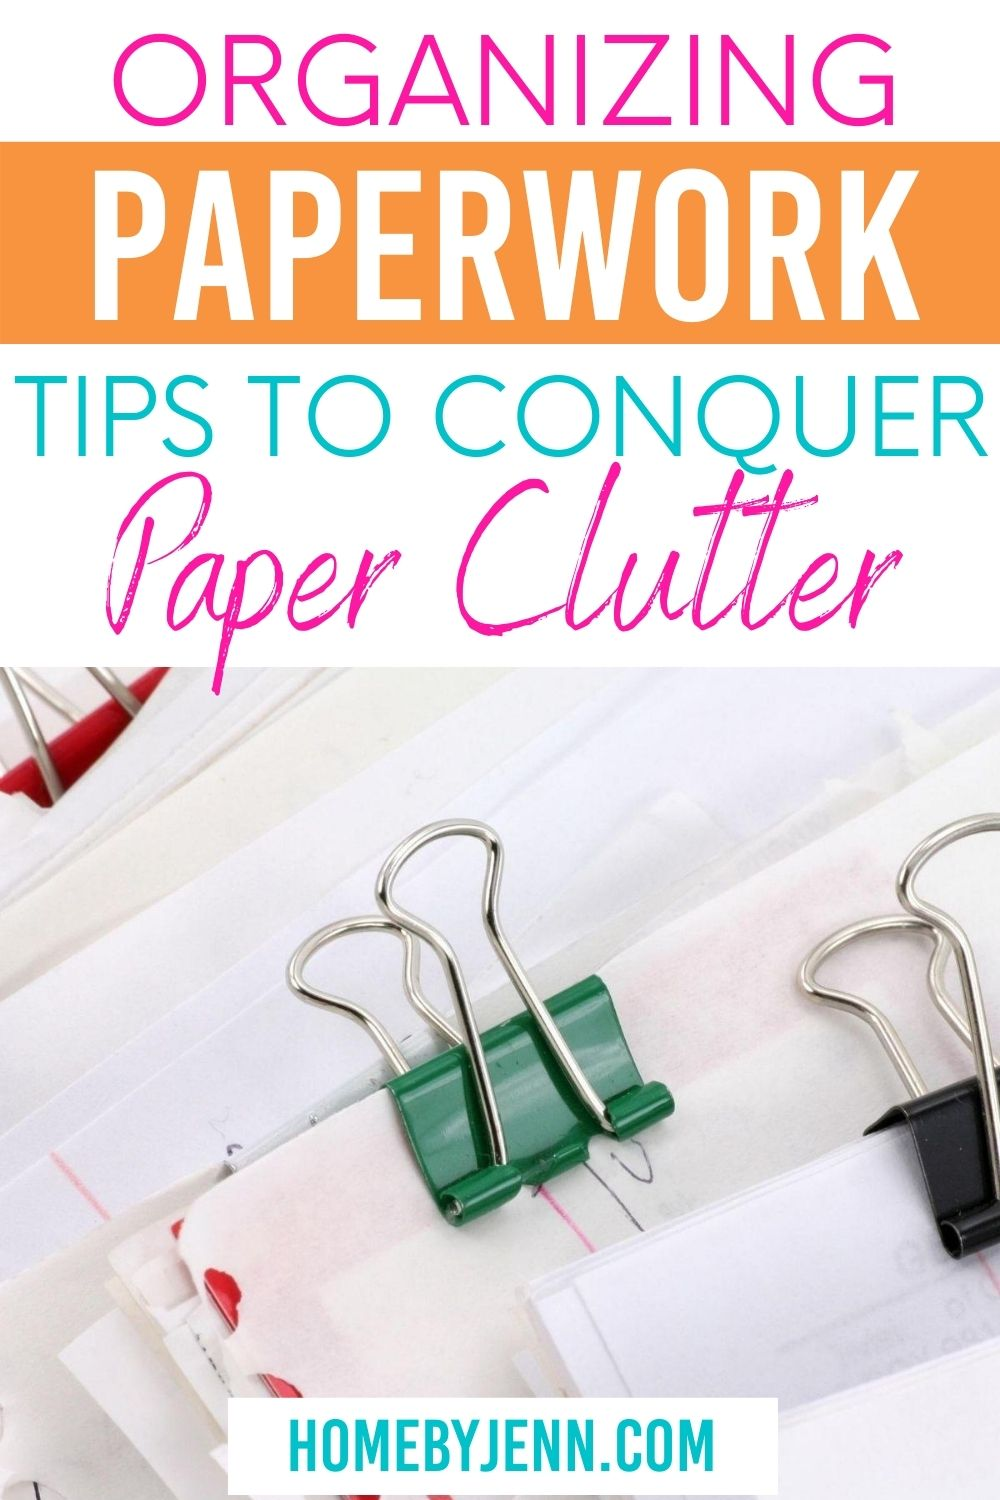 Organizing paperwork and your bills at home is something you can totally do with these simple tips.Learn how toorganize paperwork at home. #paperclutter #organizingpaper #howtoorganizepaperwork #organizepaperclutter via @homebyjenn